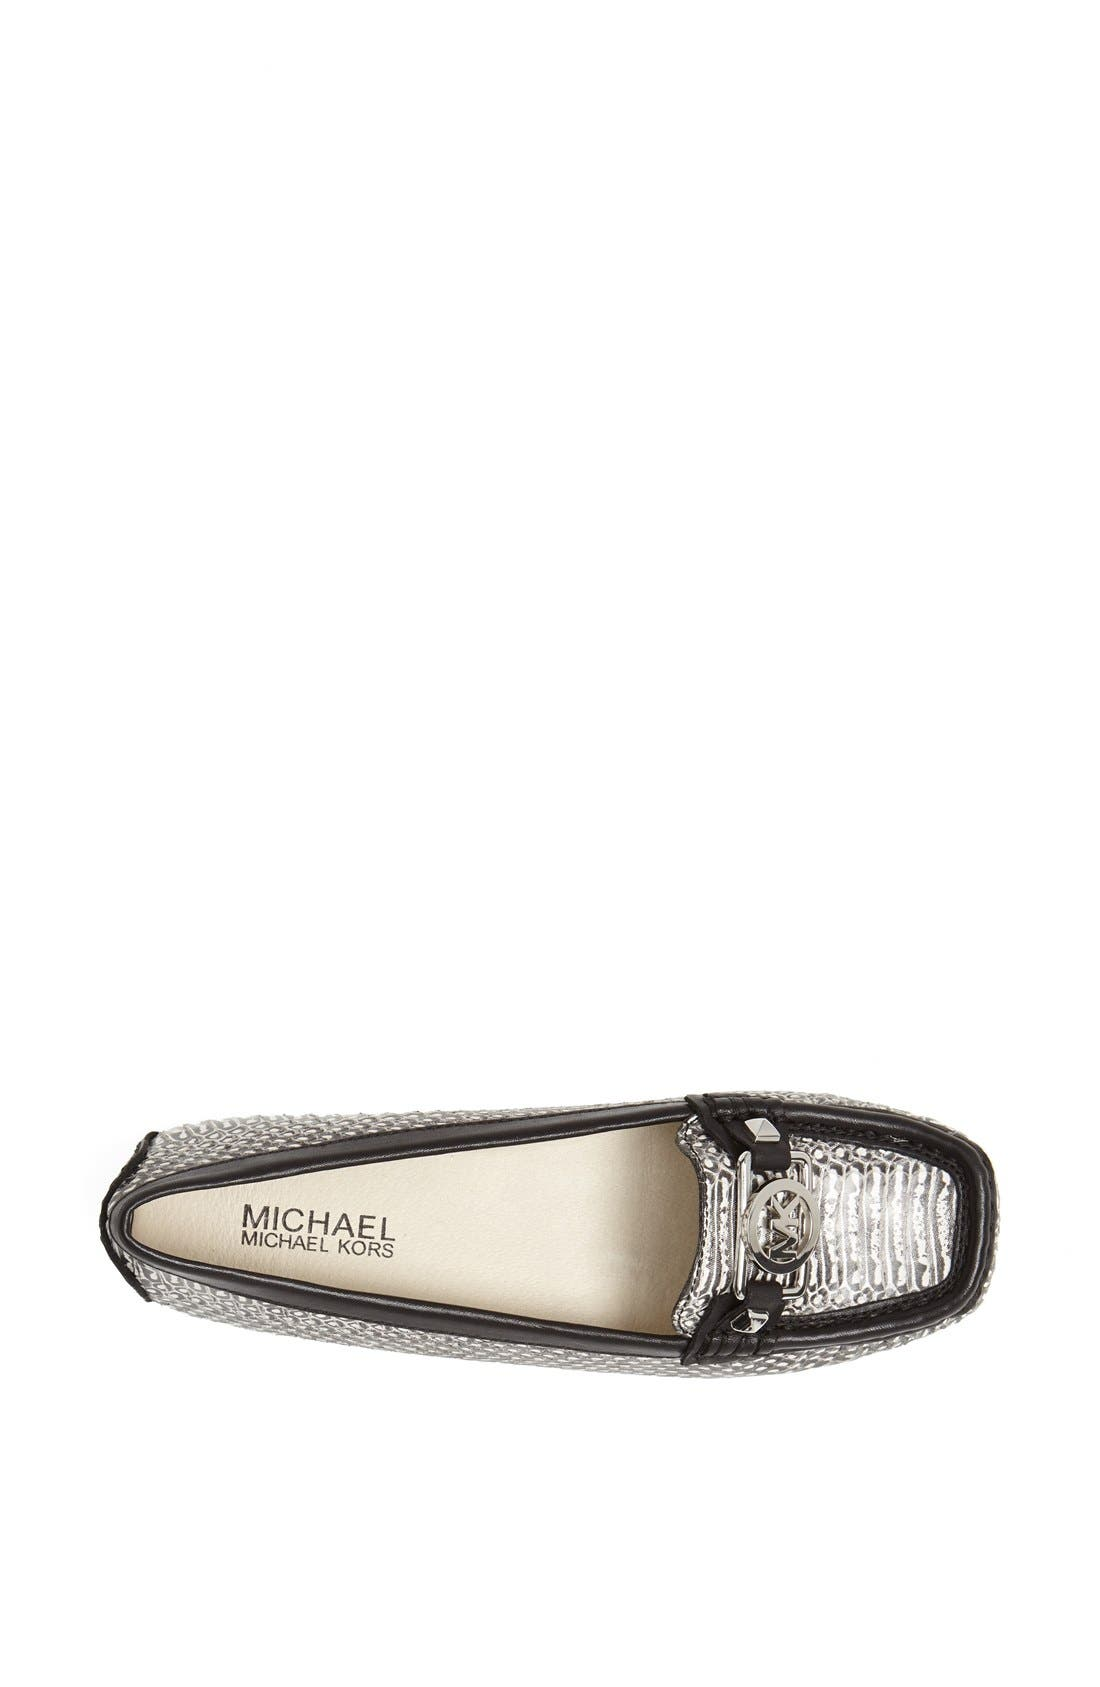 Alternate Image 3  - MICHAEL Michael Kors 'Charm' Snake Embossed Leather Flat